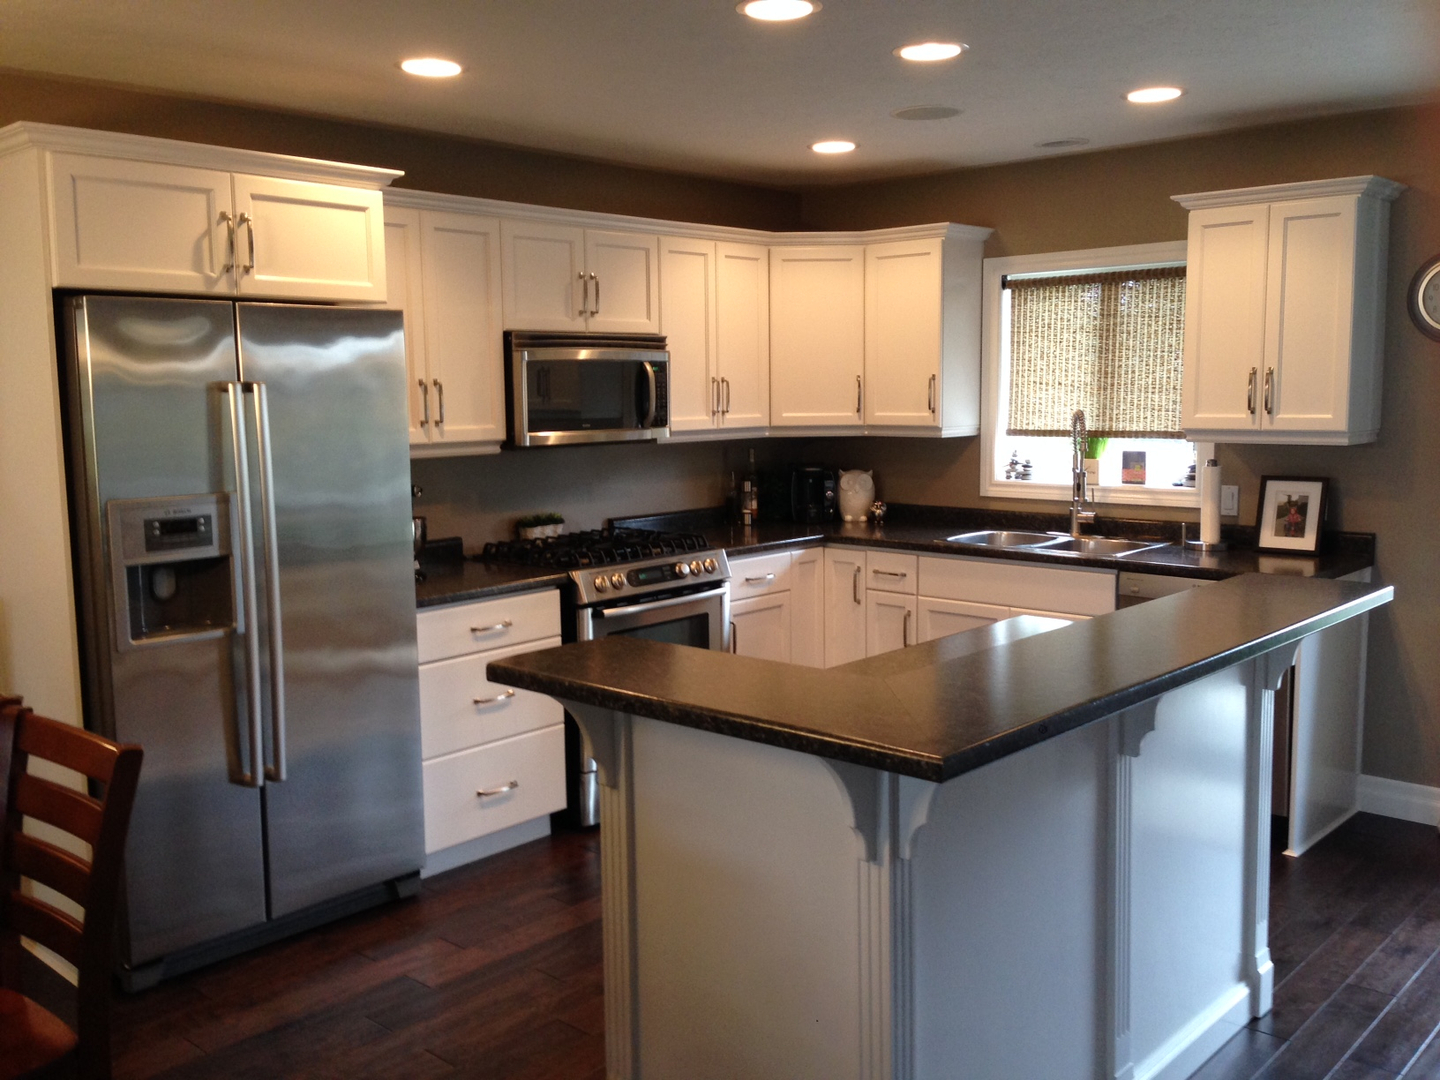 spray it like new kitchens contact